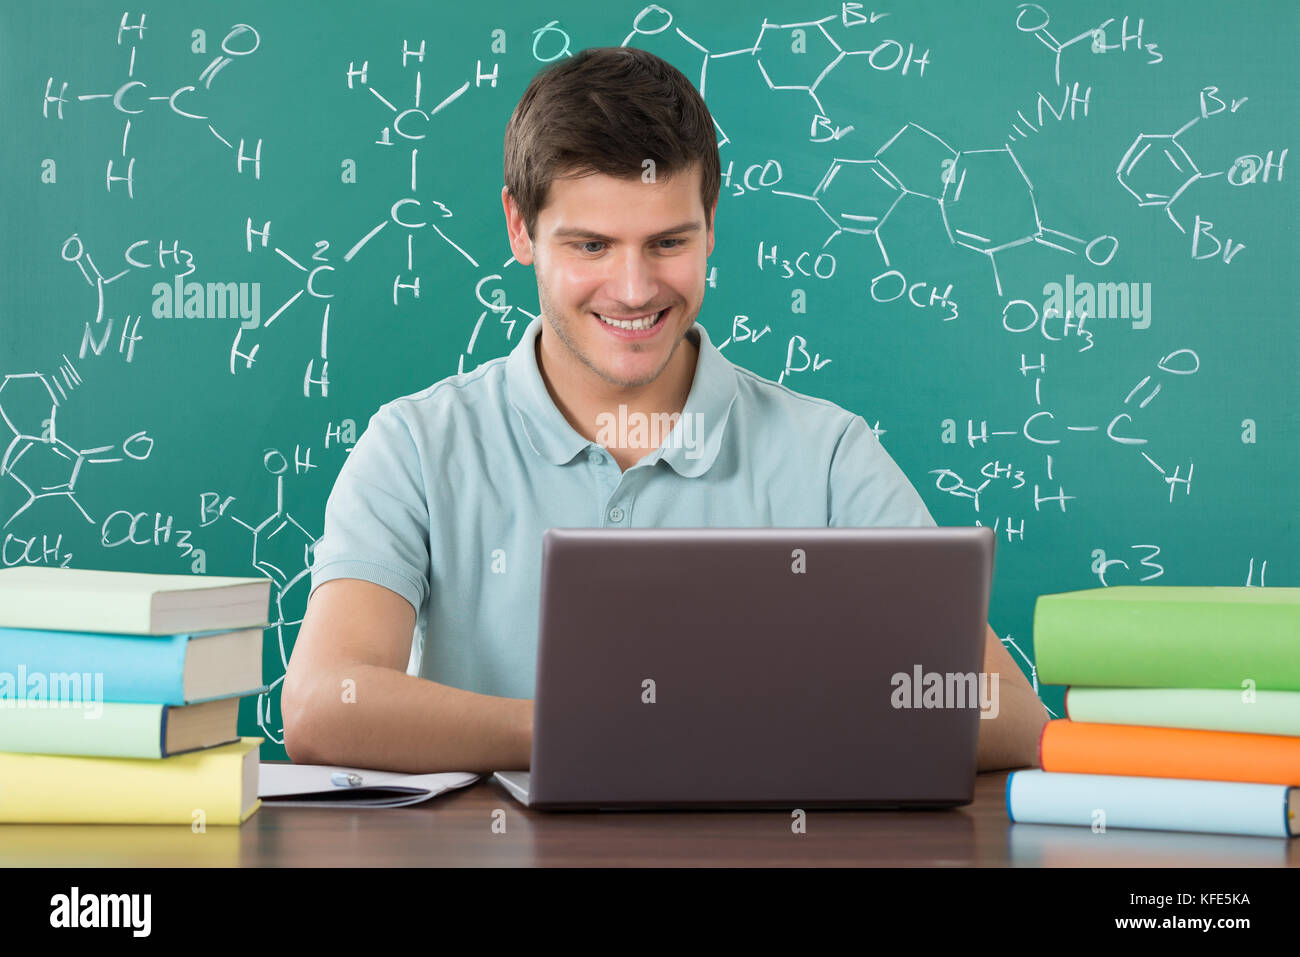 Young Happy Man Using Laptop While Studying In Classroom - Stock Image